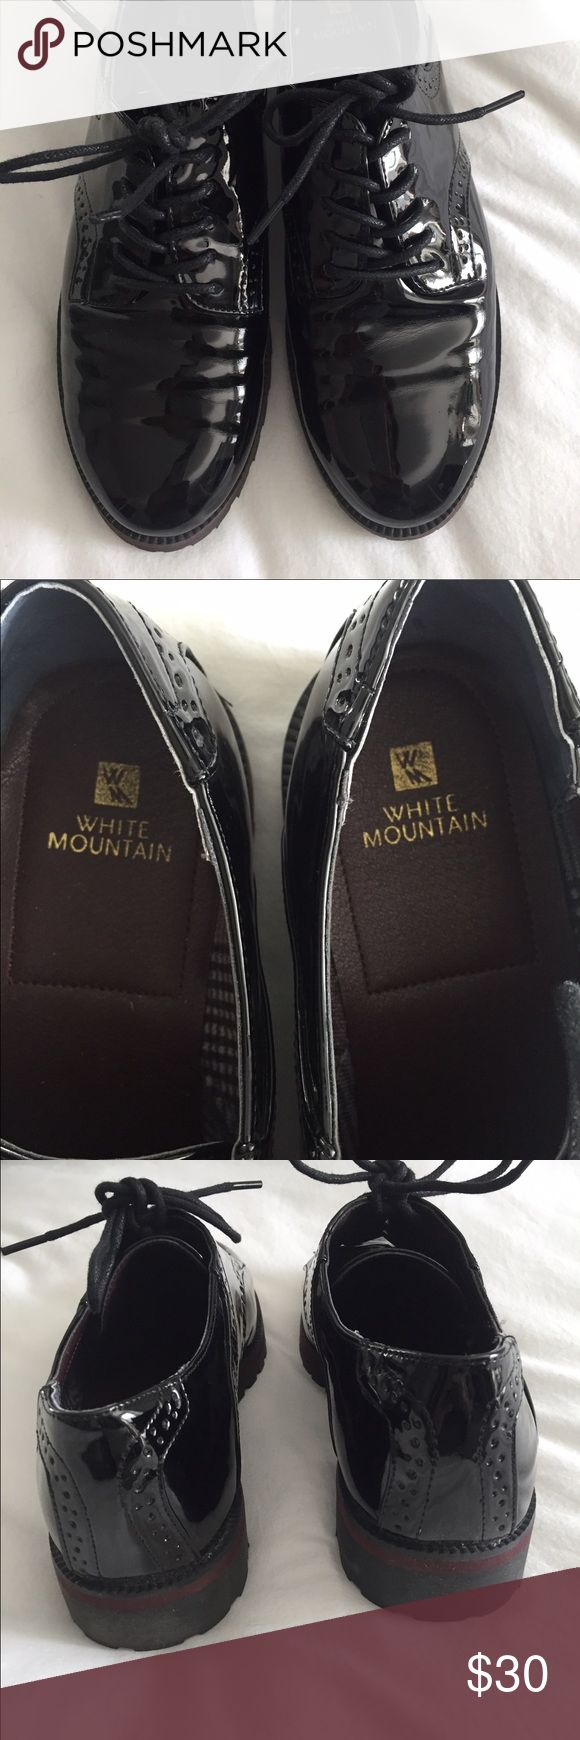 White Mountain Oxfords Black patten vegan leather brogues in spectacular condition-Worn once outdoors! Just a couple of tiny scuffs on inside of shoes shown in last pic. All man made materials and fit slightly on small side. White Mountain Shoes Flats & Loafers